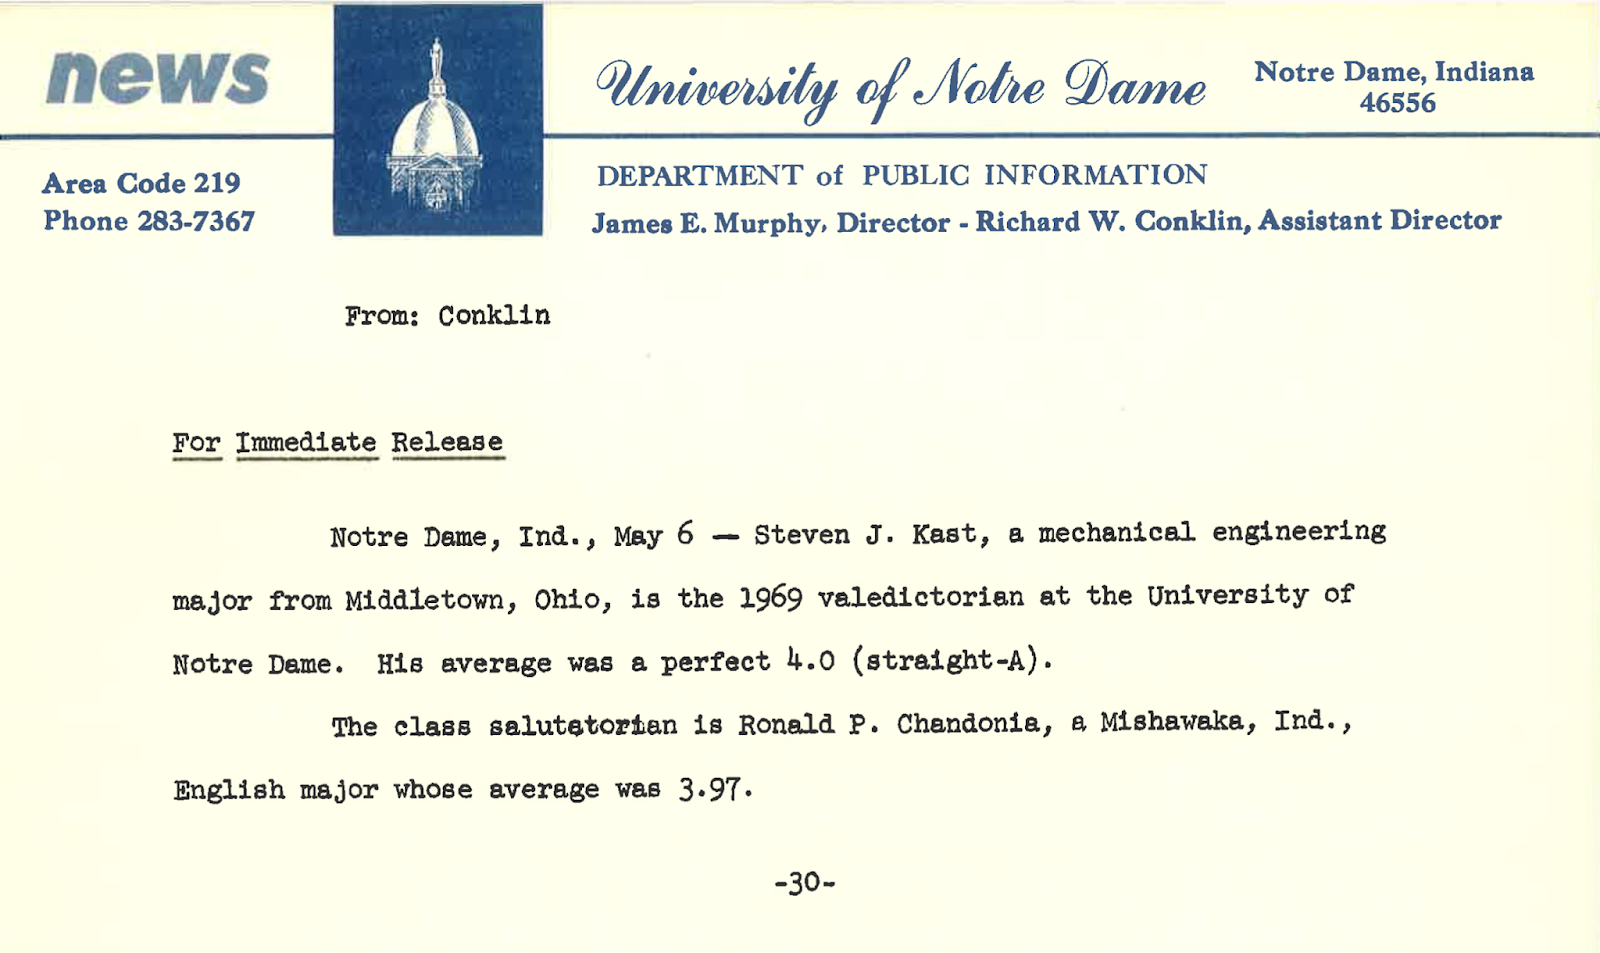 The University Of Notre Dame Class Of 1969 Blog May 31